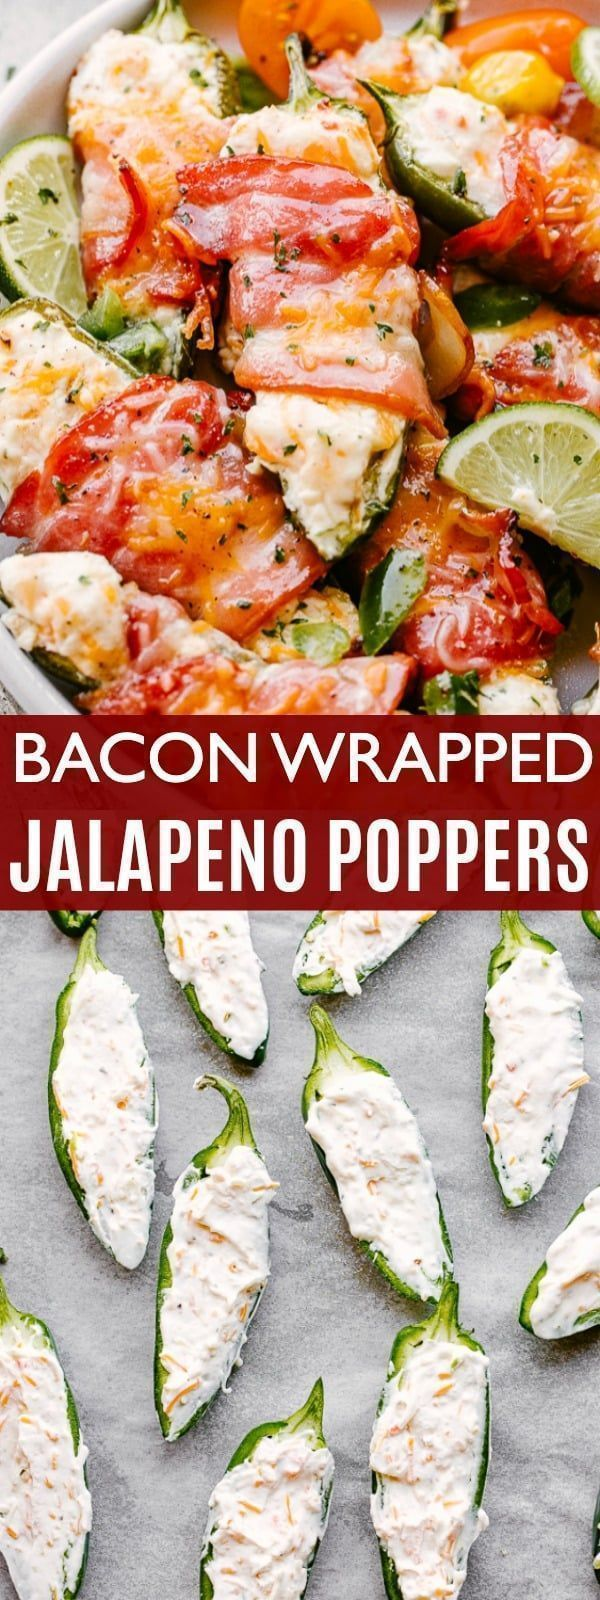 Bacon Wrapped Baked Jalapeño Poppers - Easy Super Bowl Food Idea!